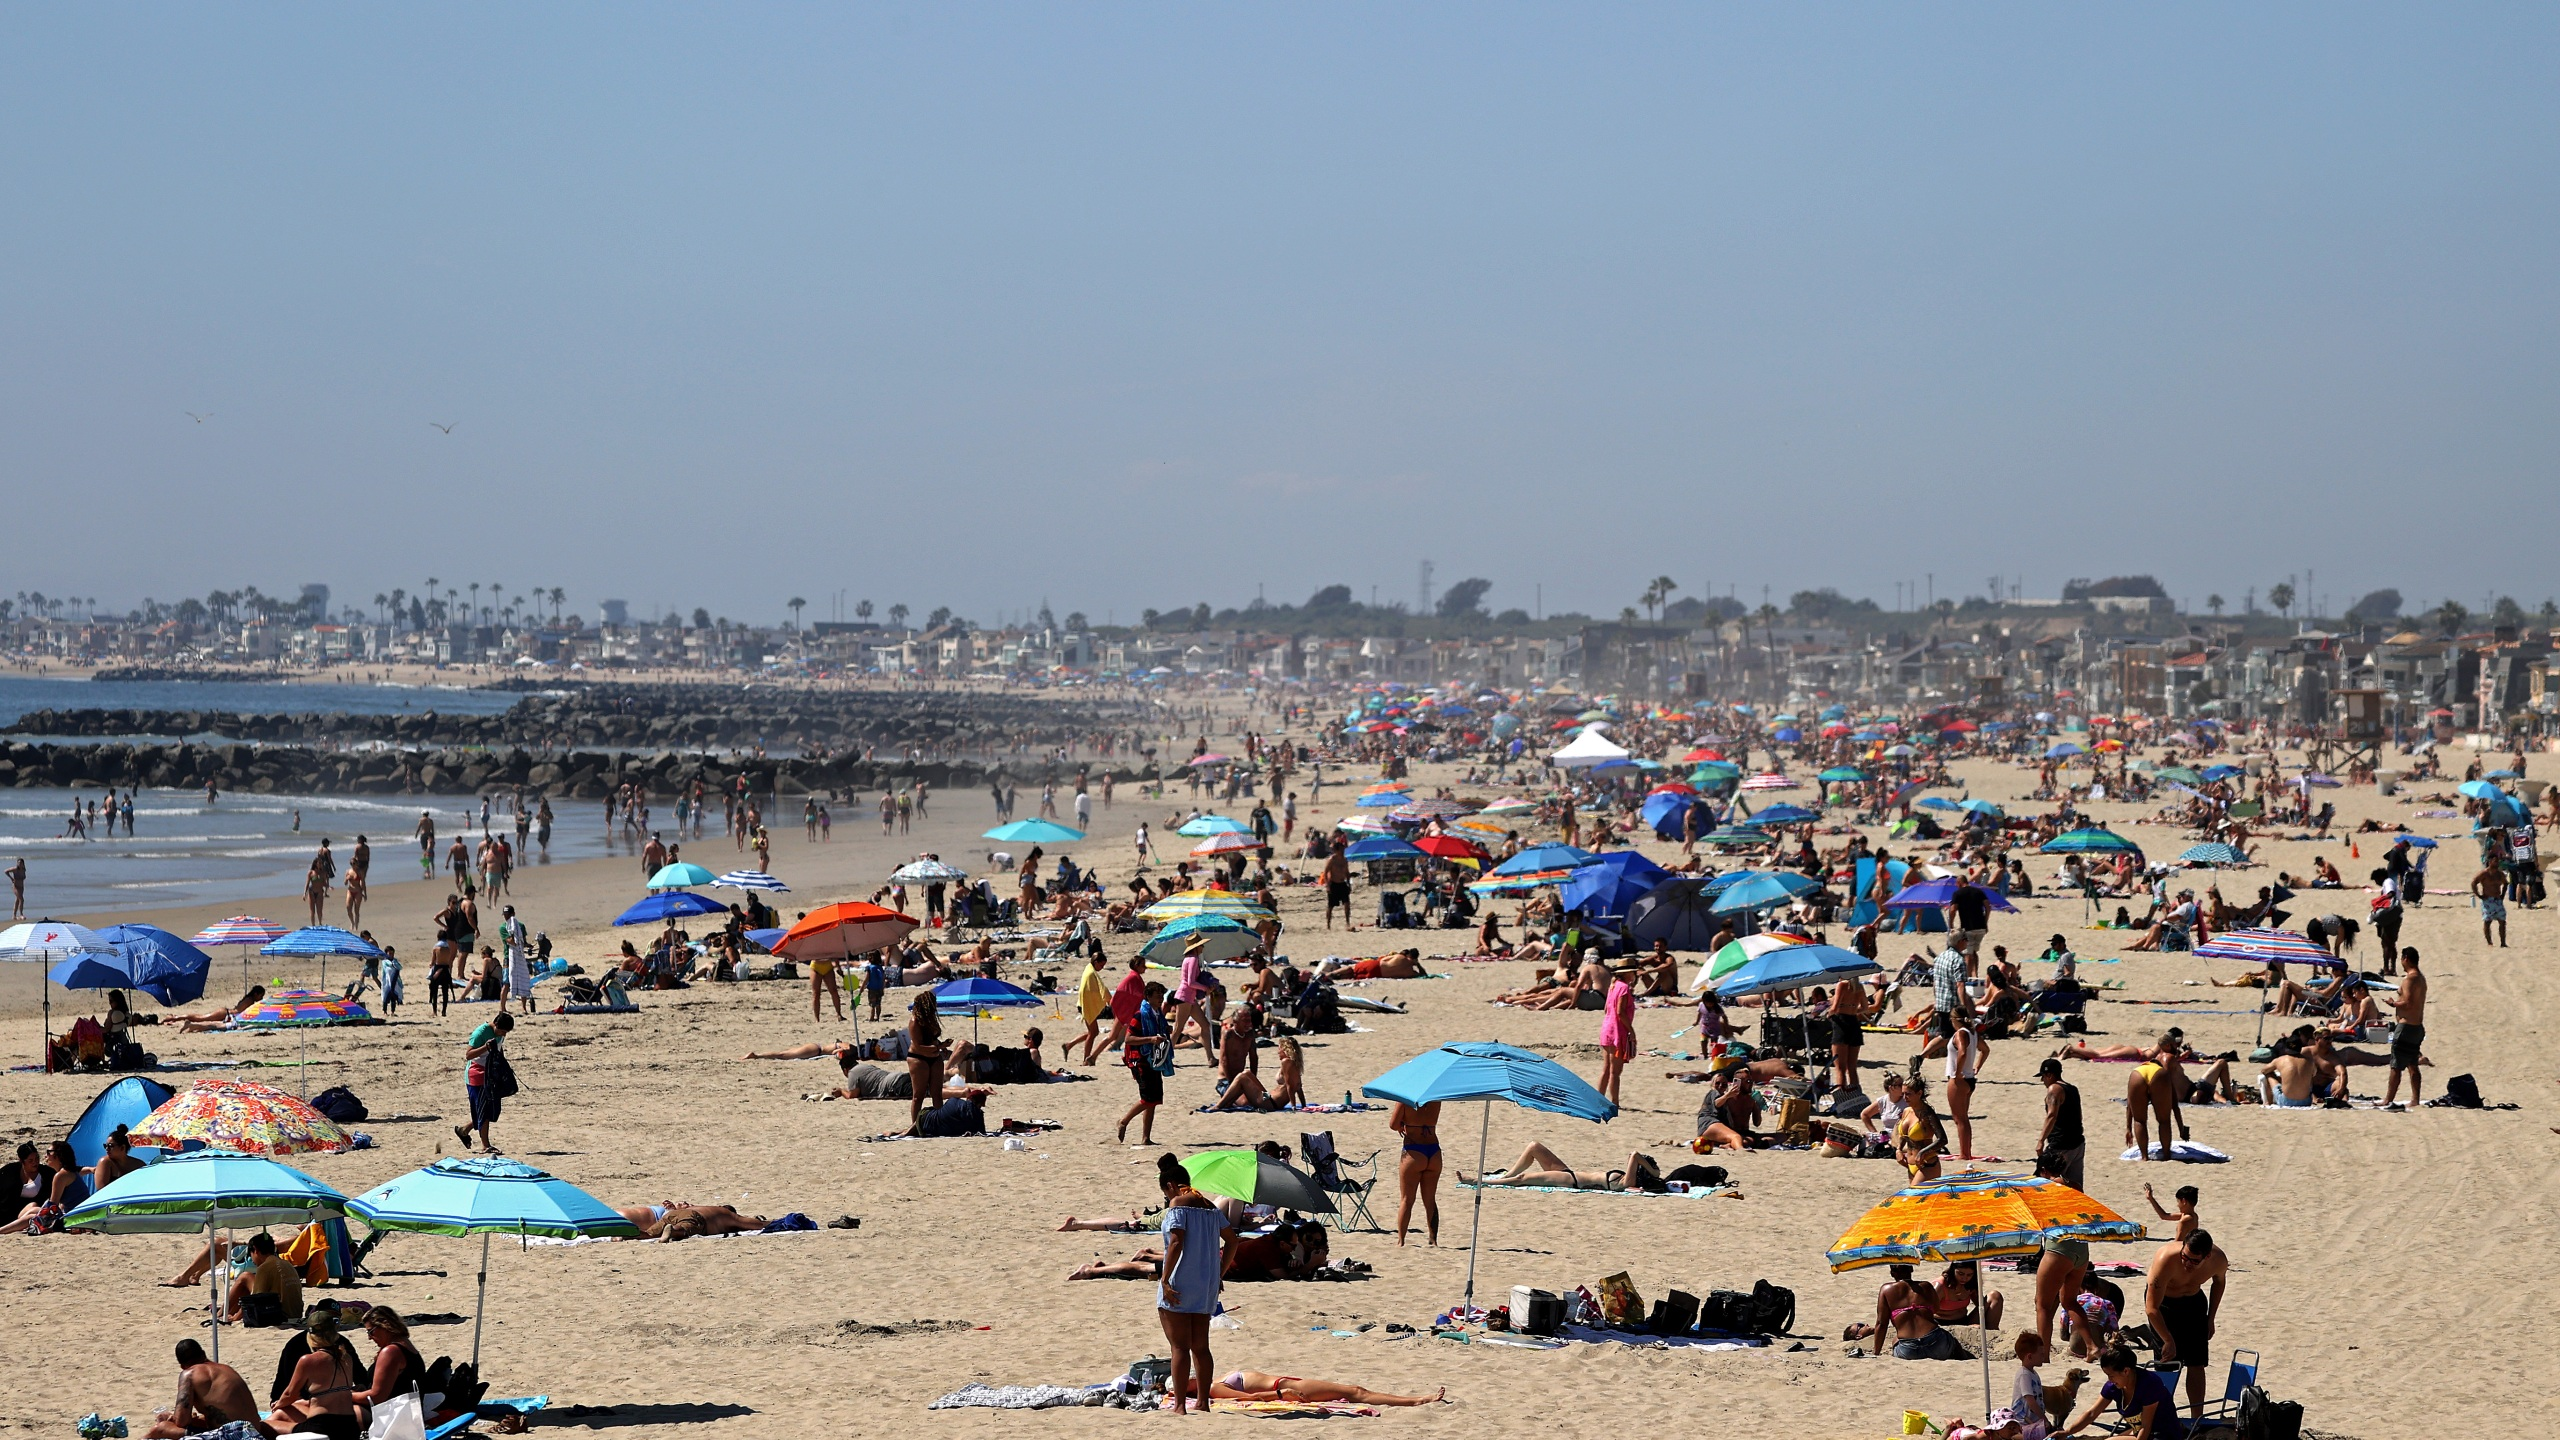 People are seen crowding north of Newport Beach Pier on April 25, 2020. (Michael Heiman/Getty Images)